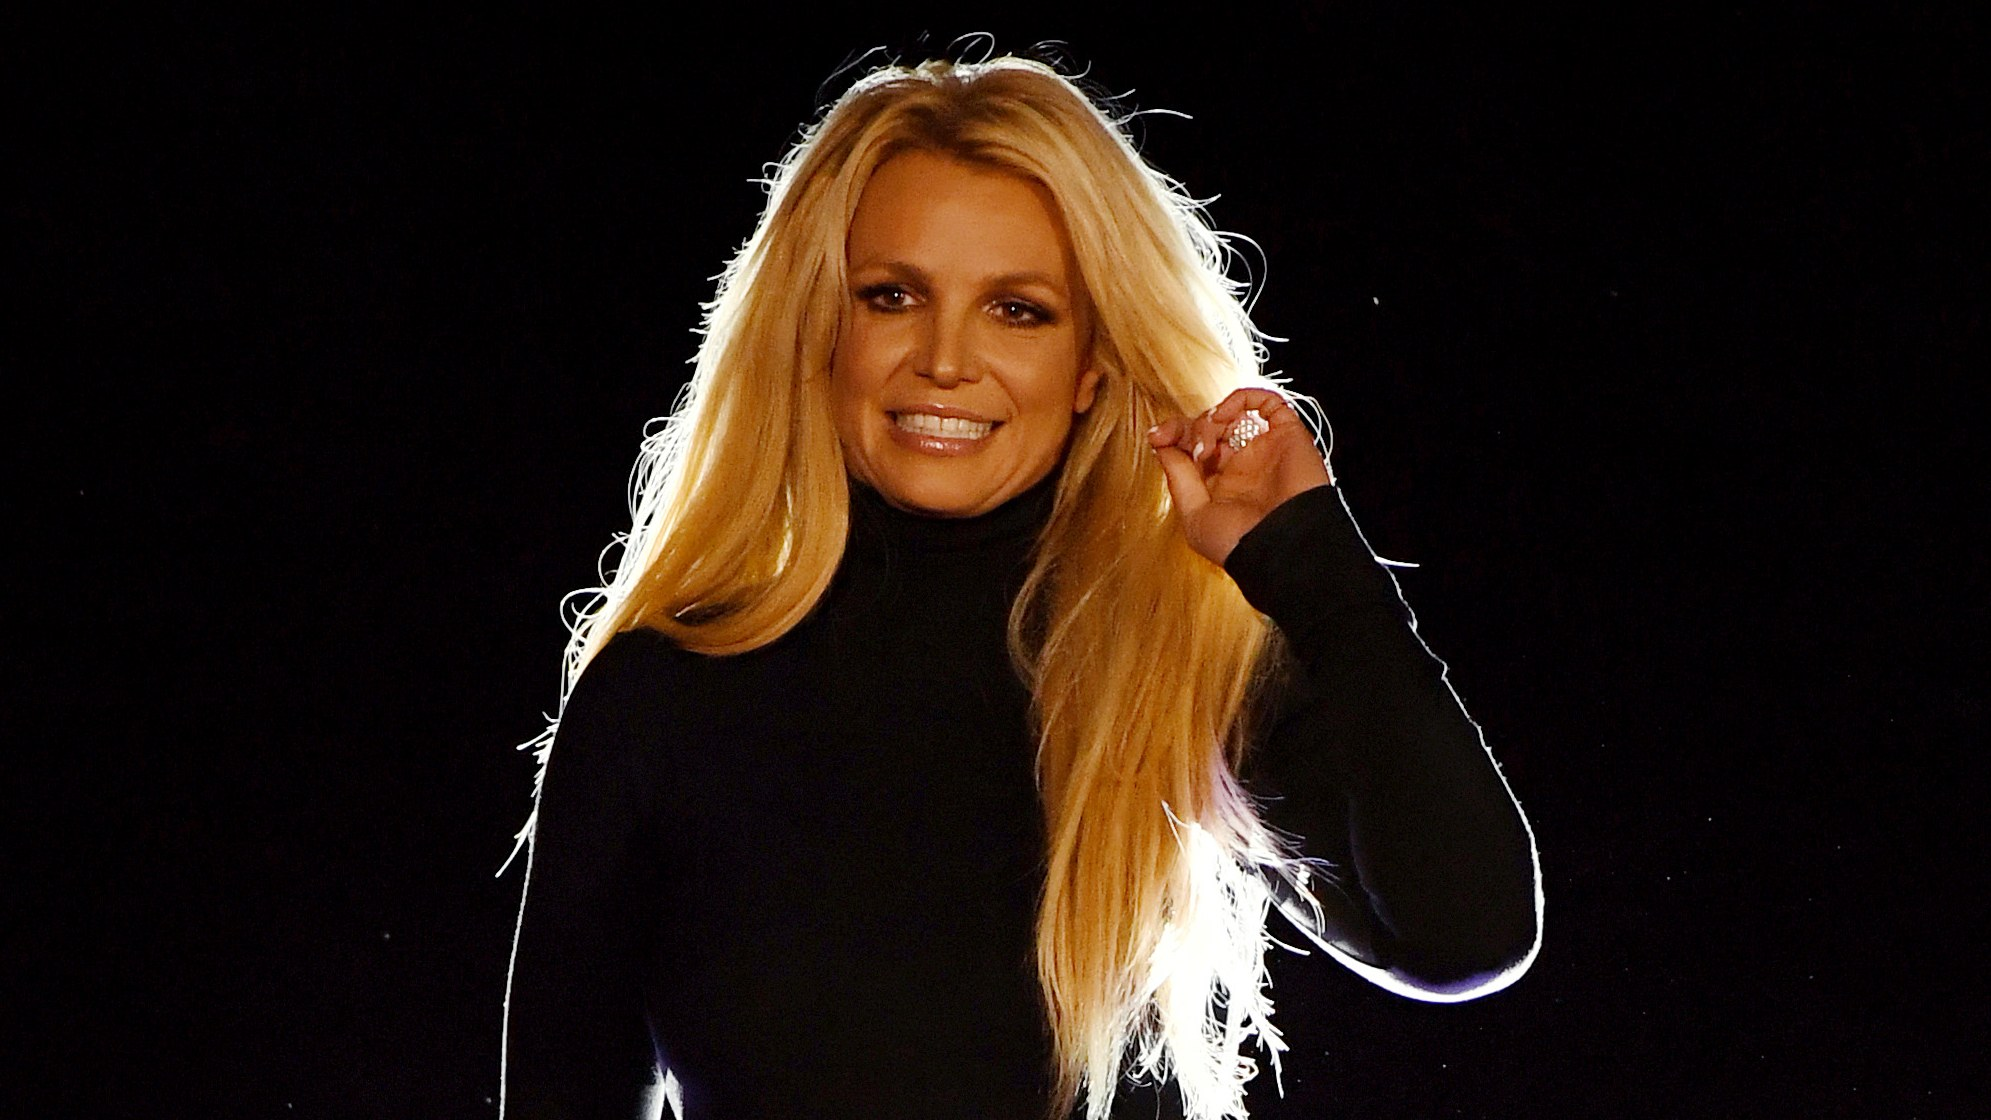 Britney Spears Wallpapers For IPhone